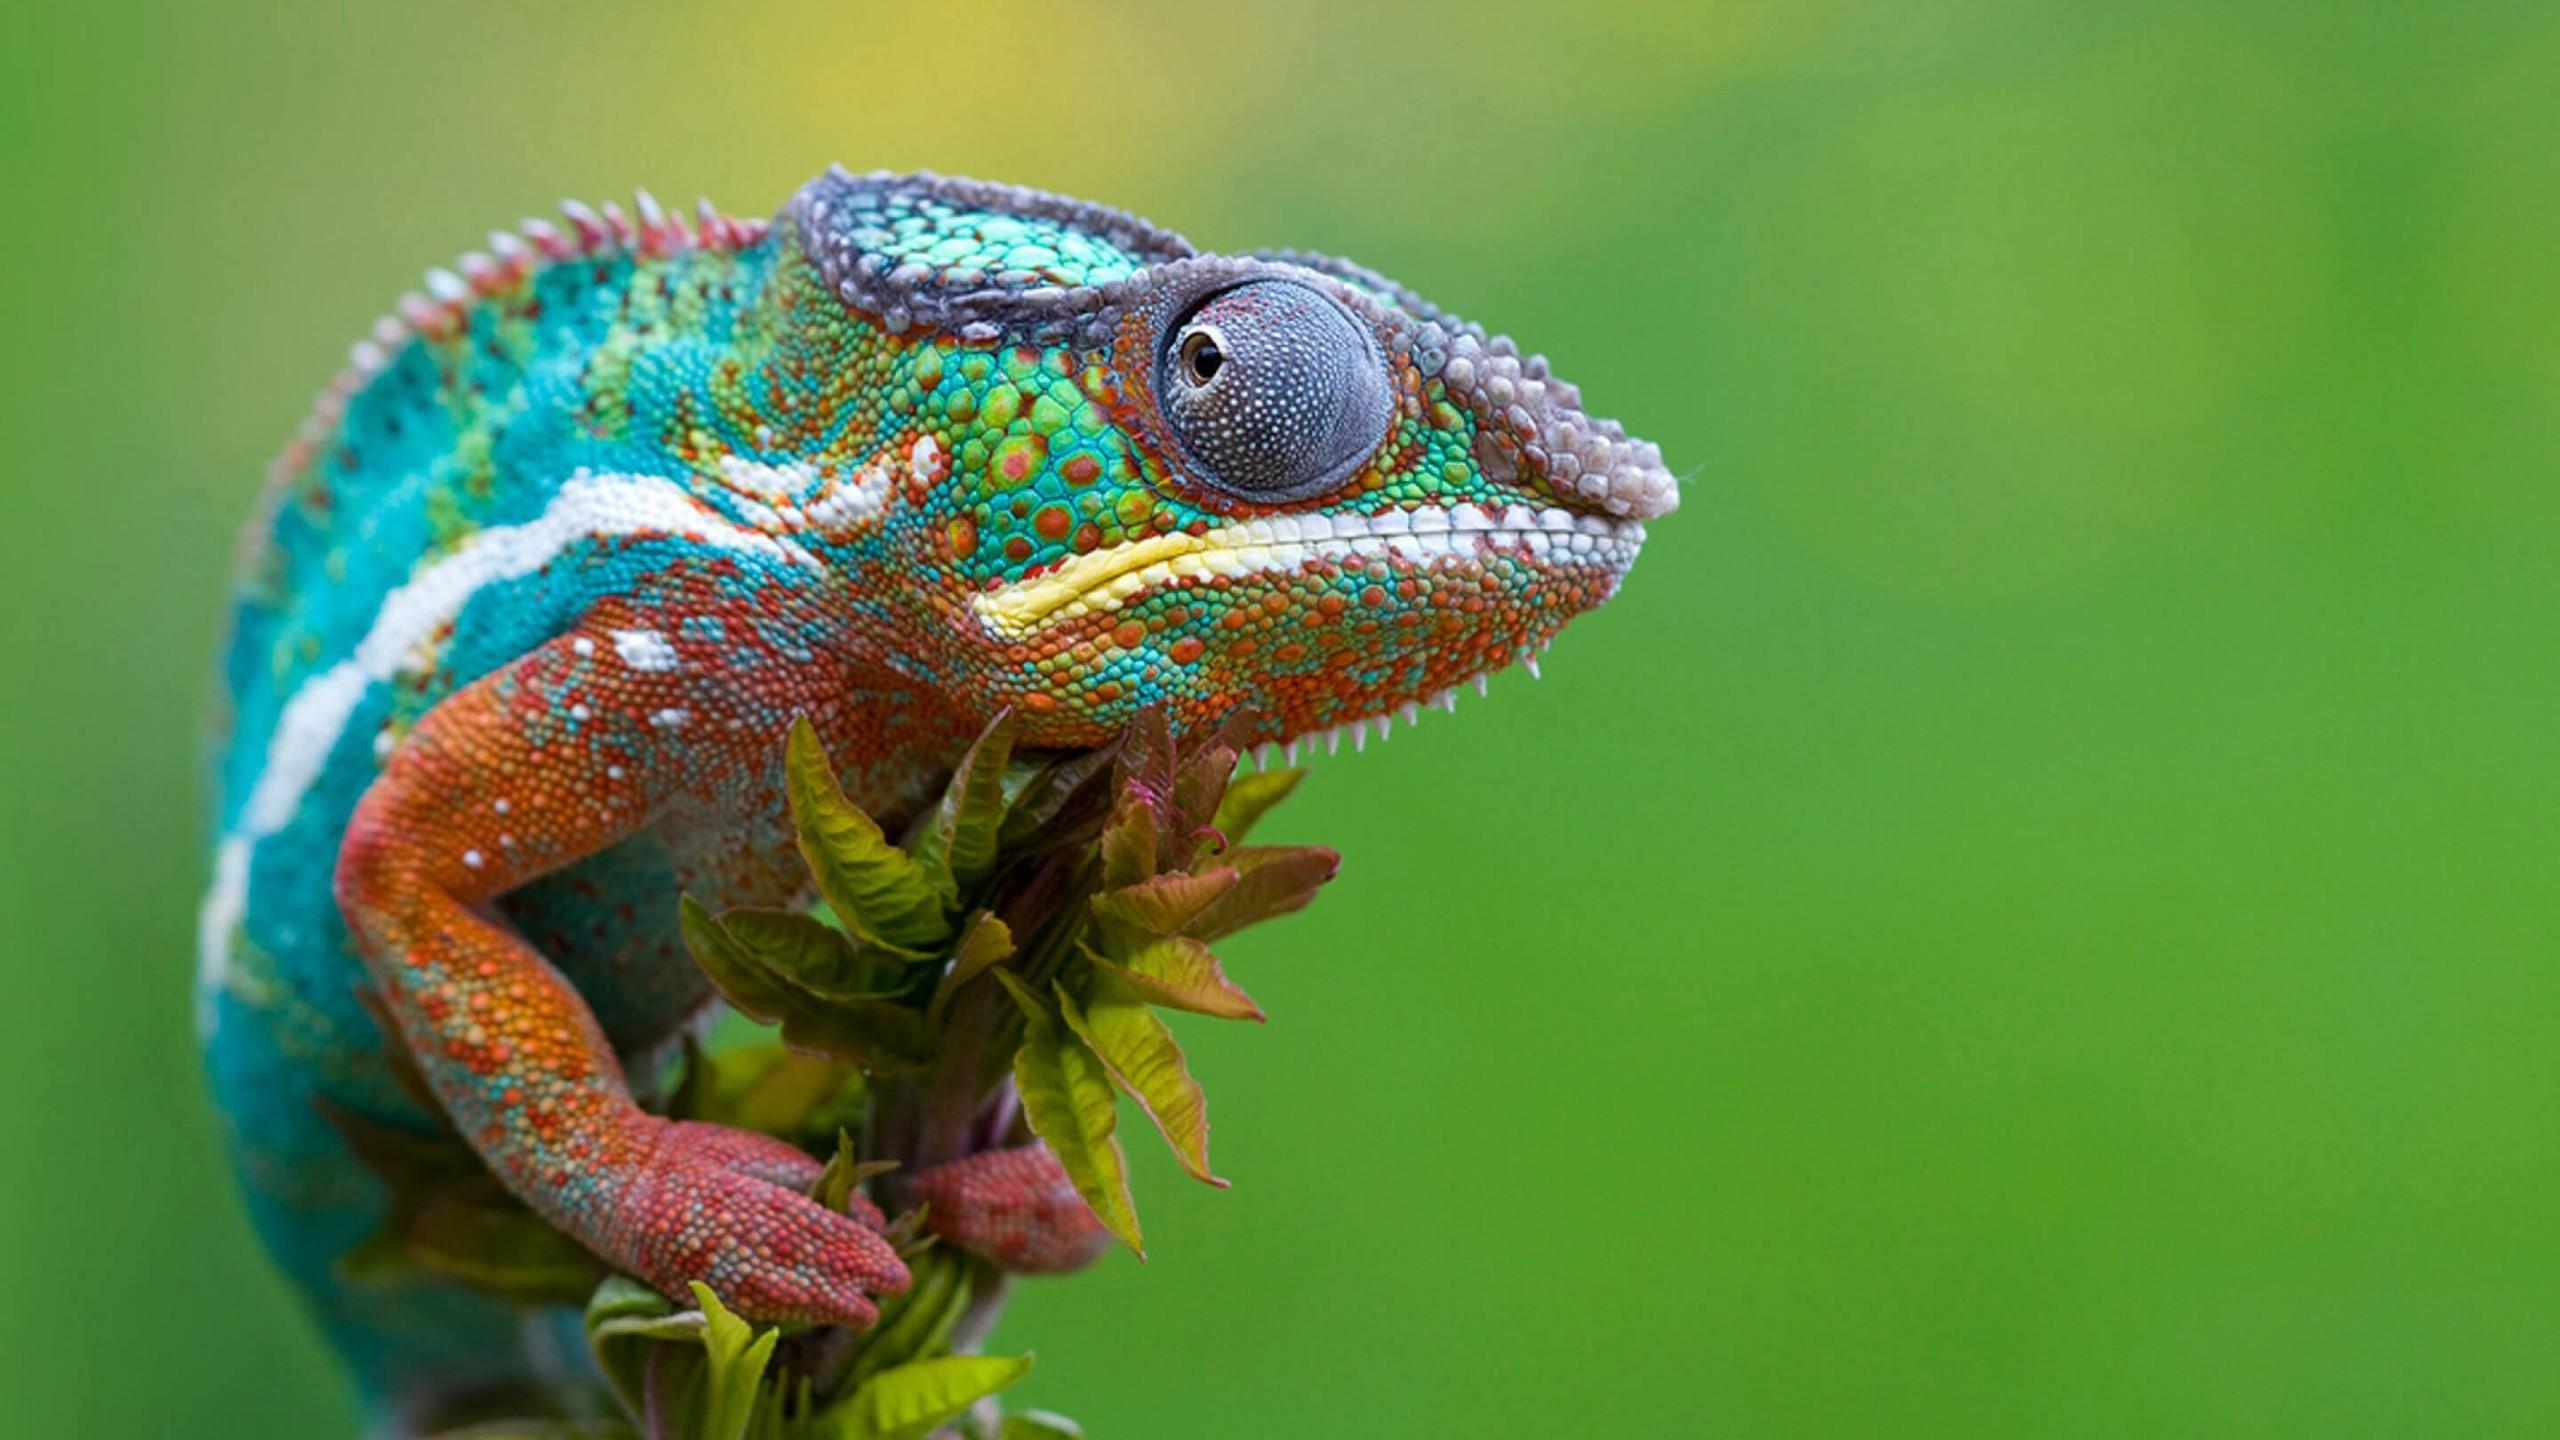 Colorful Panther Chameleon Wallpaper for Social Media YouTube Channel Art